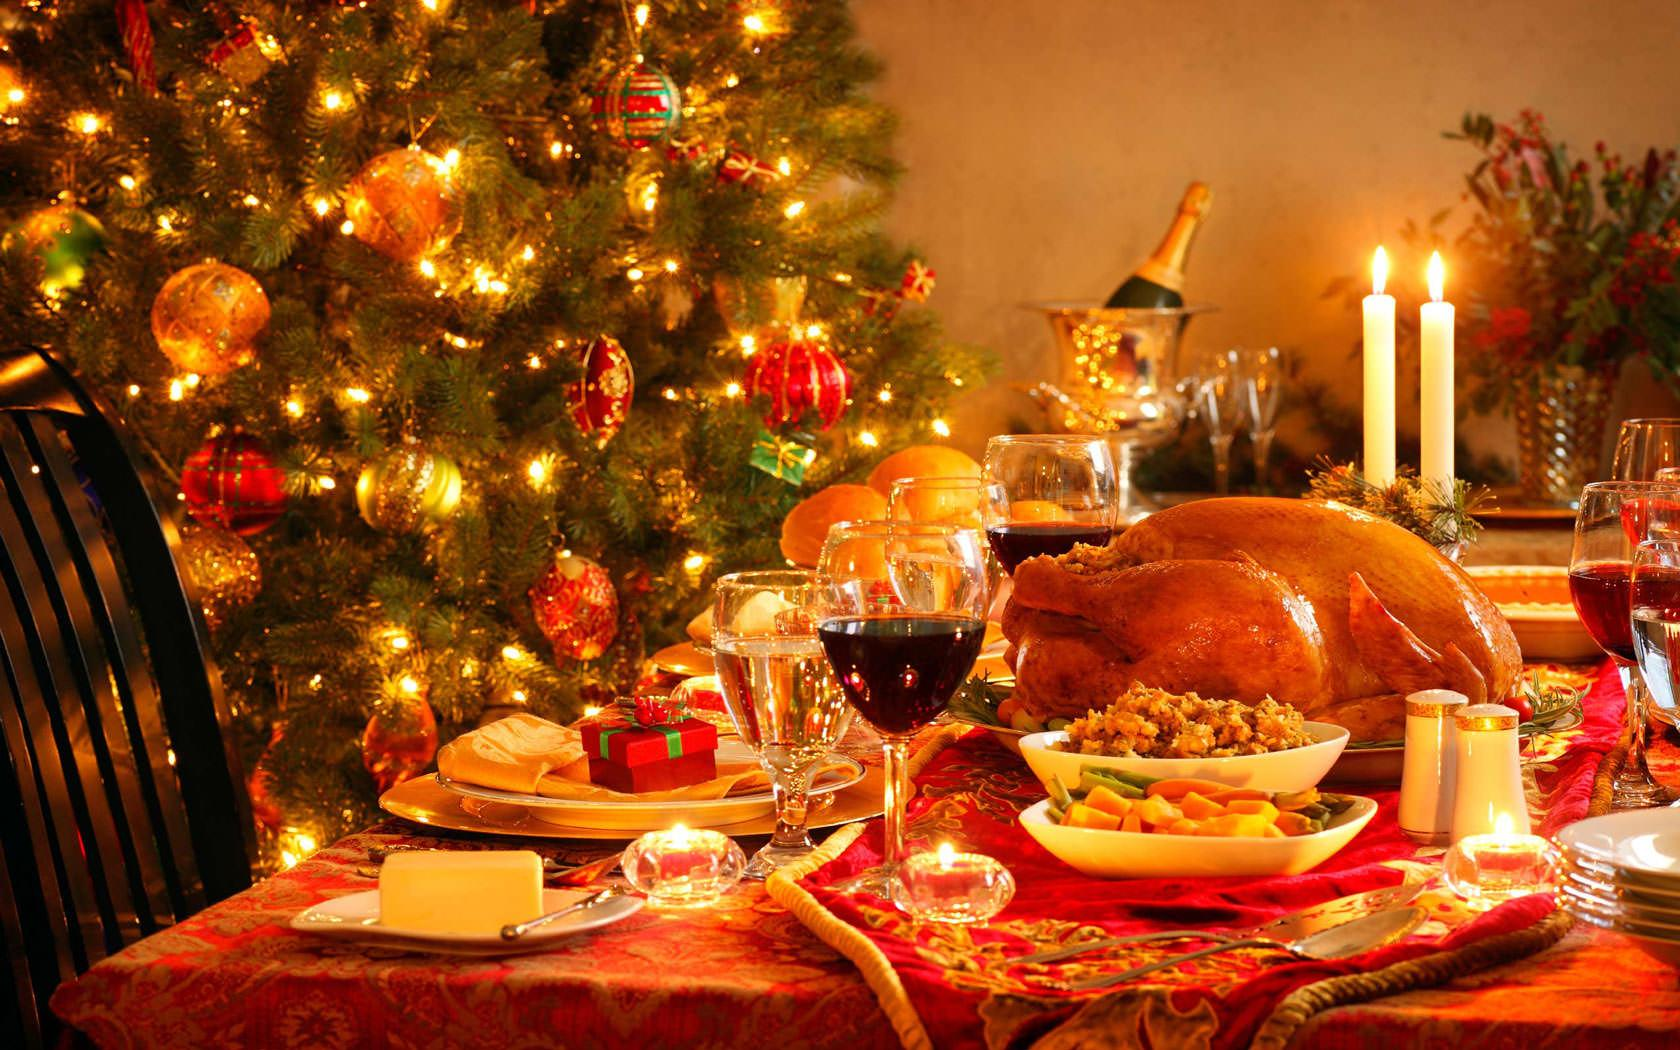 Free Creative Christmas Food Ideas computer desktop wallpaper